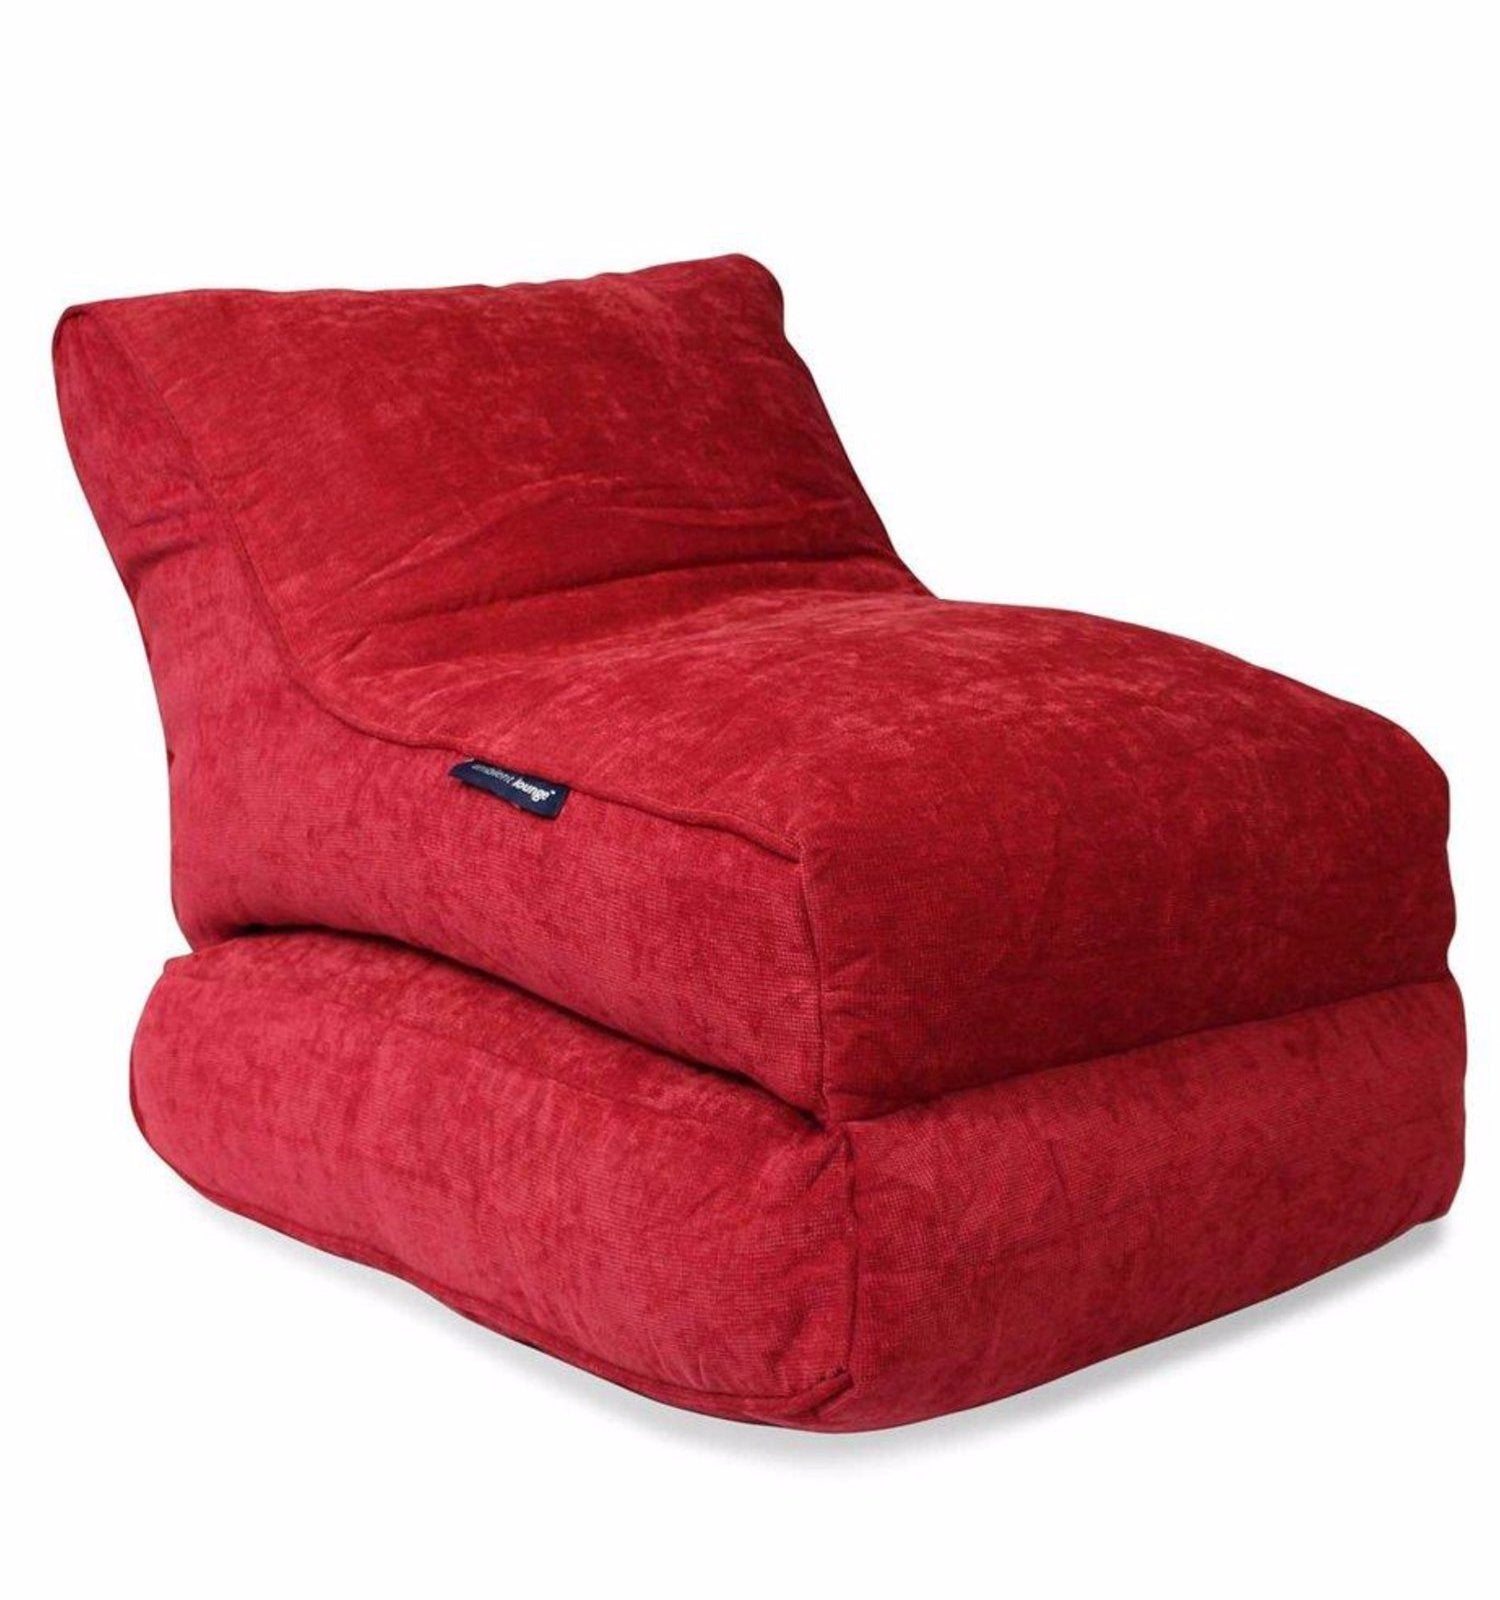 Sitzsack Liege Conversion Lounger Indoor Wildberry Red